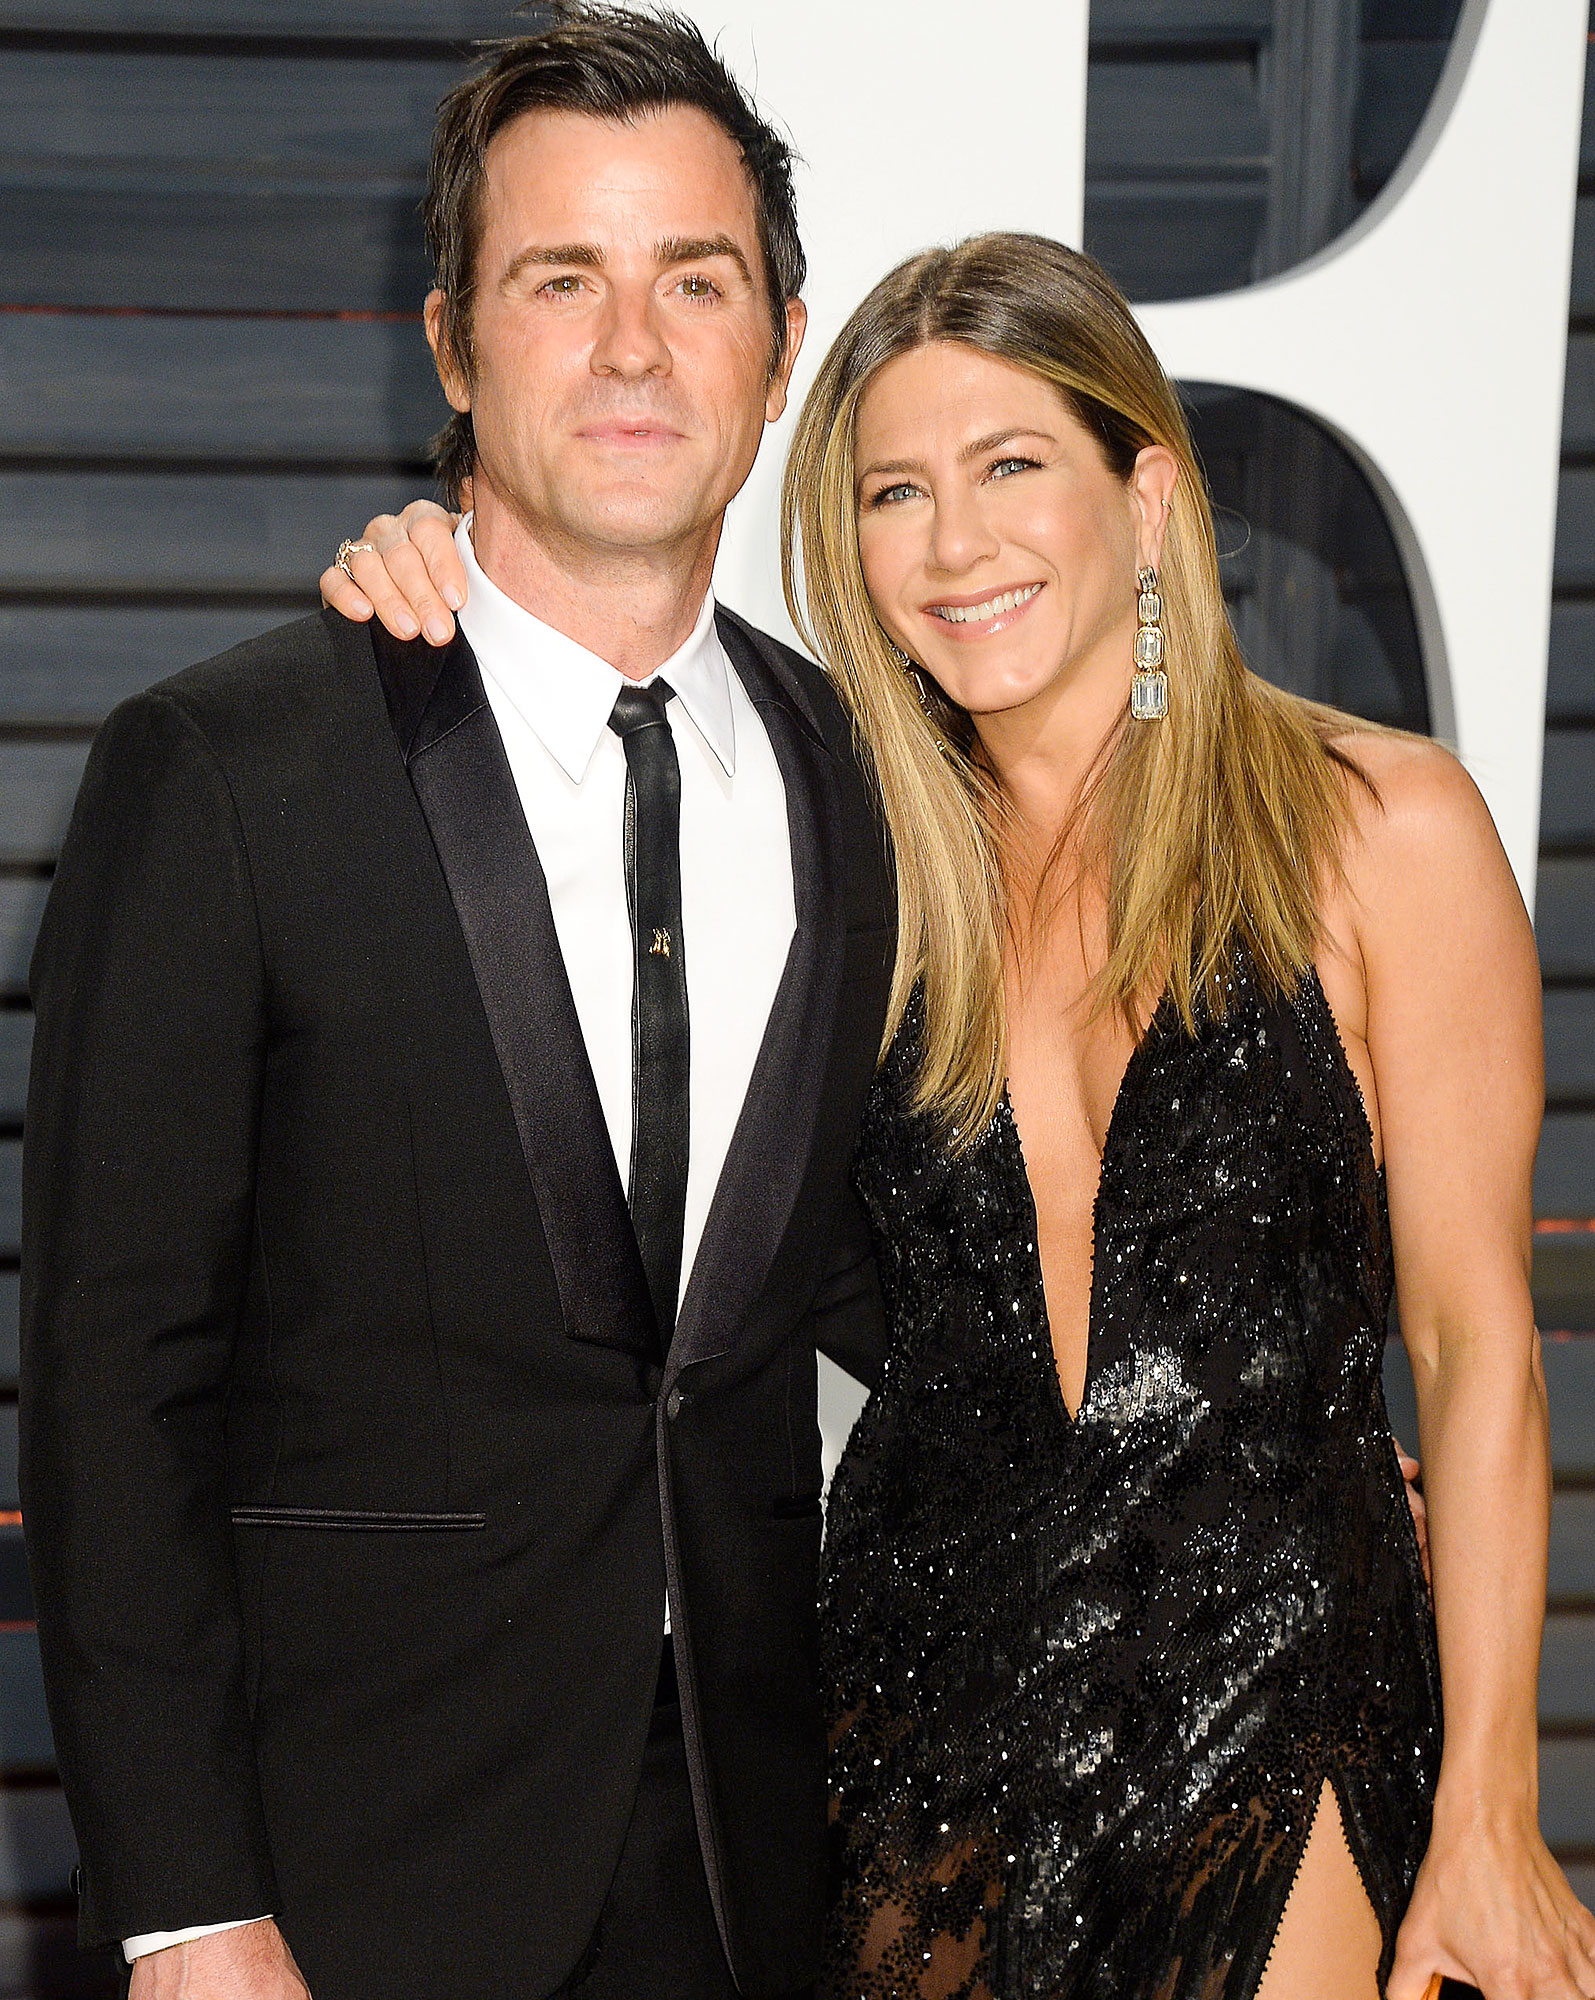 Justin Theroux Was Shocked by Attention During Jennifer Aniston Romance: 'I'm Just a Character'